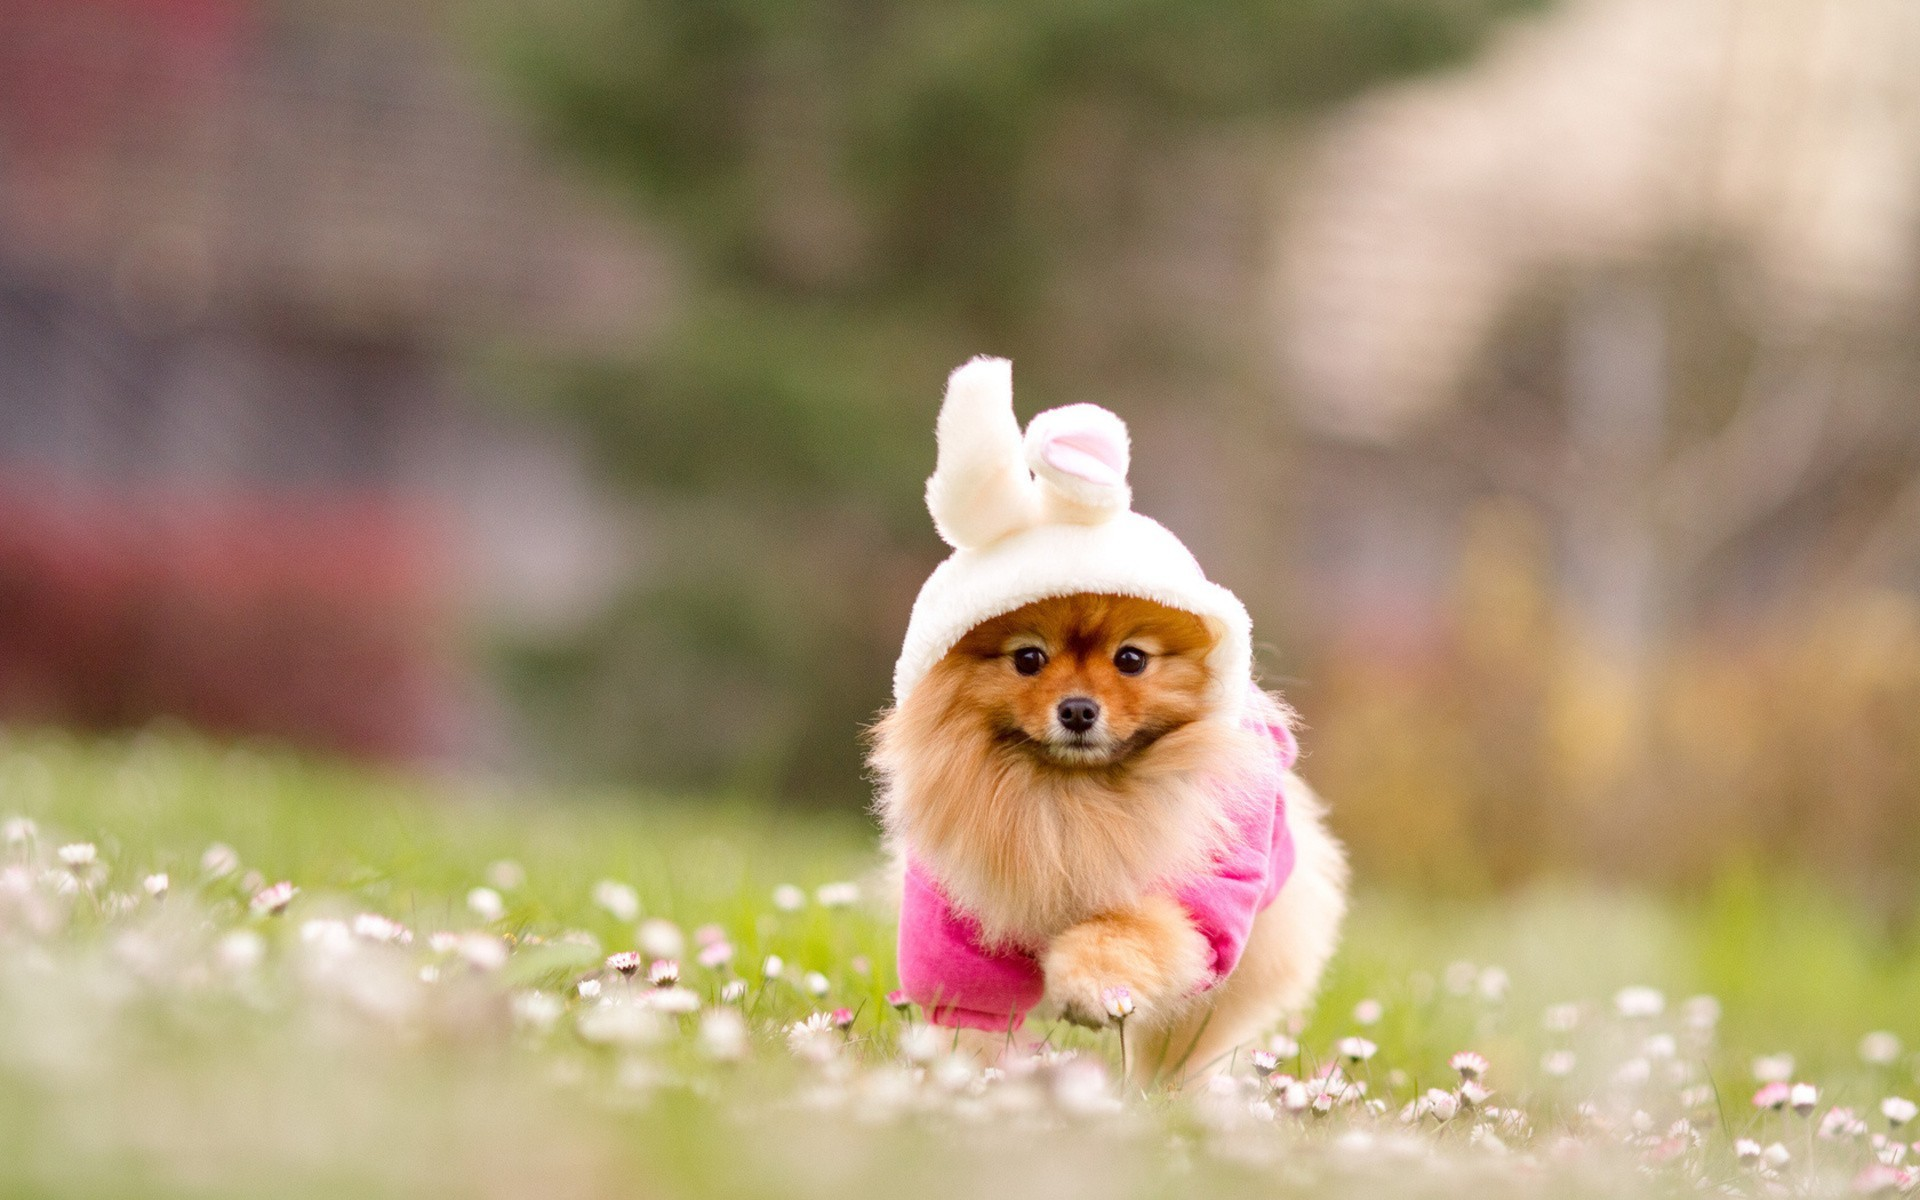 1970x1130 Rascal Cute Puppies Puppy Desktop Wallpapers Free Appealing For Style And Wallpaper